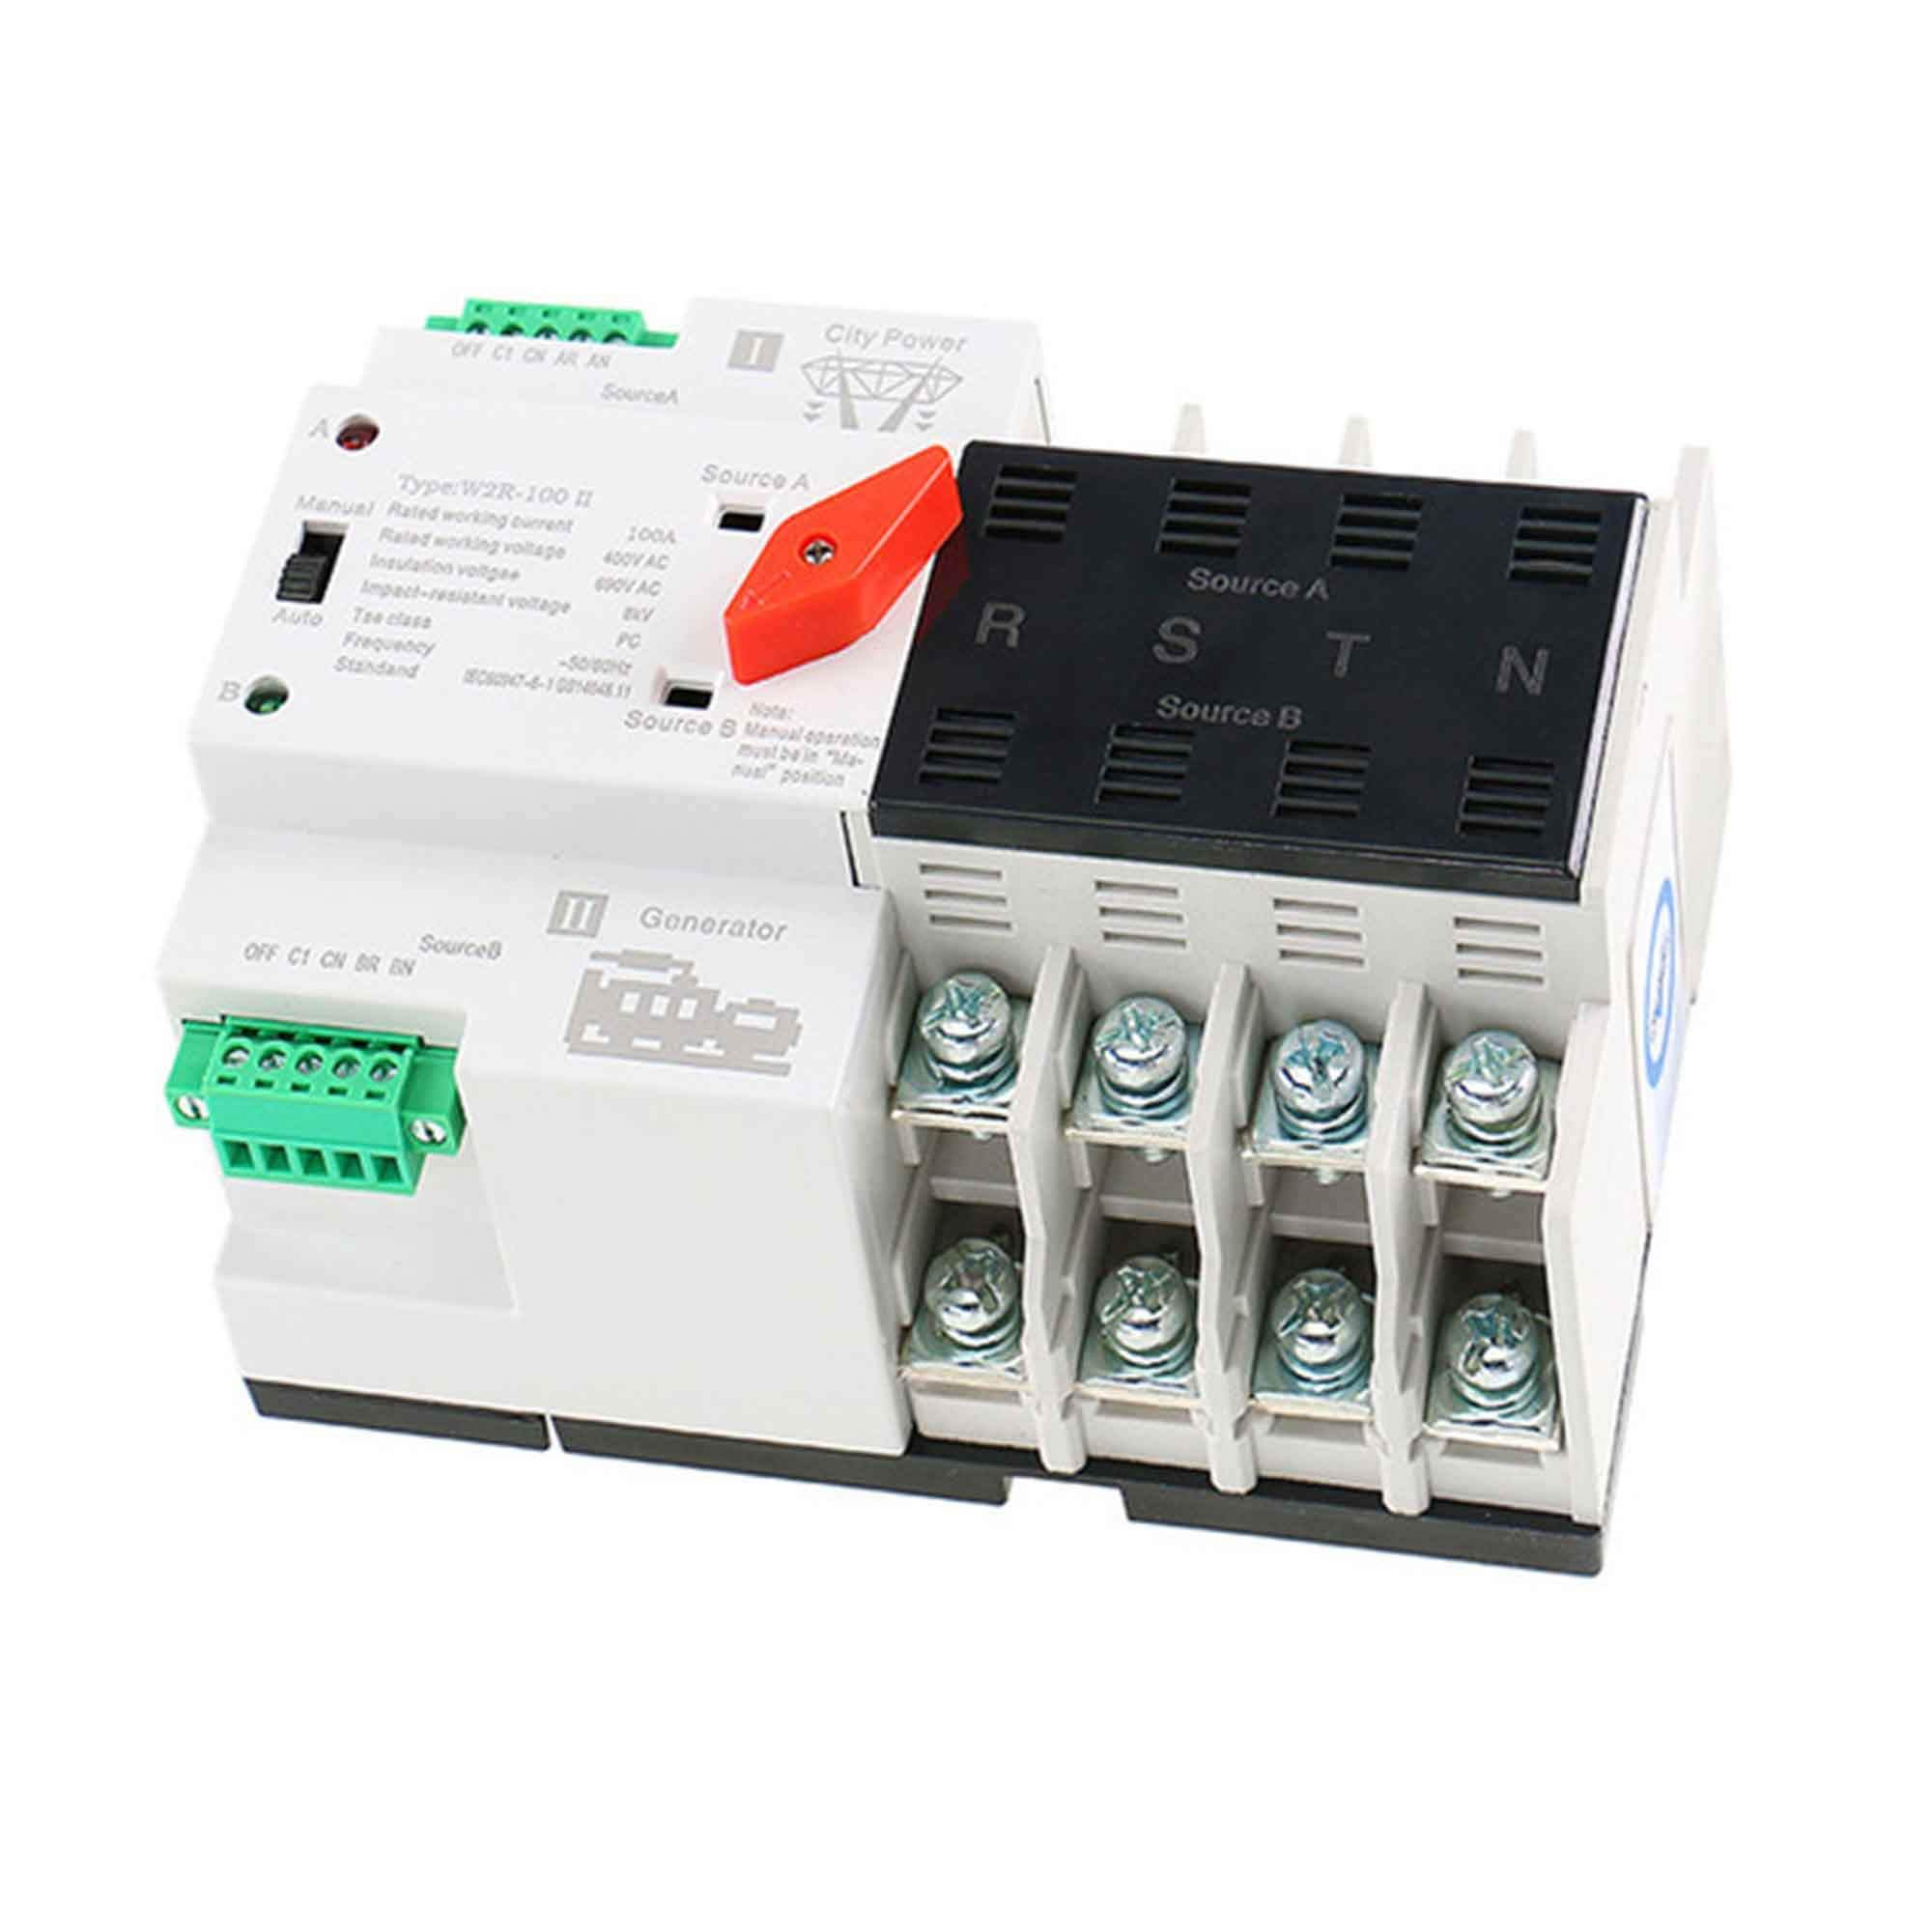 GAEYAELE W2R Mini ATS 4P Automatic Transfer Switch Controller Electrical Type ATS Max 100A 4POLE (W2R-4P 100A) by GAEYAELE (Image #1)